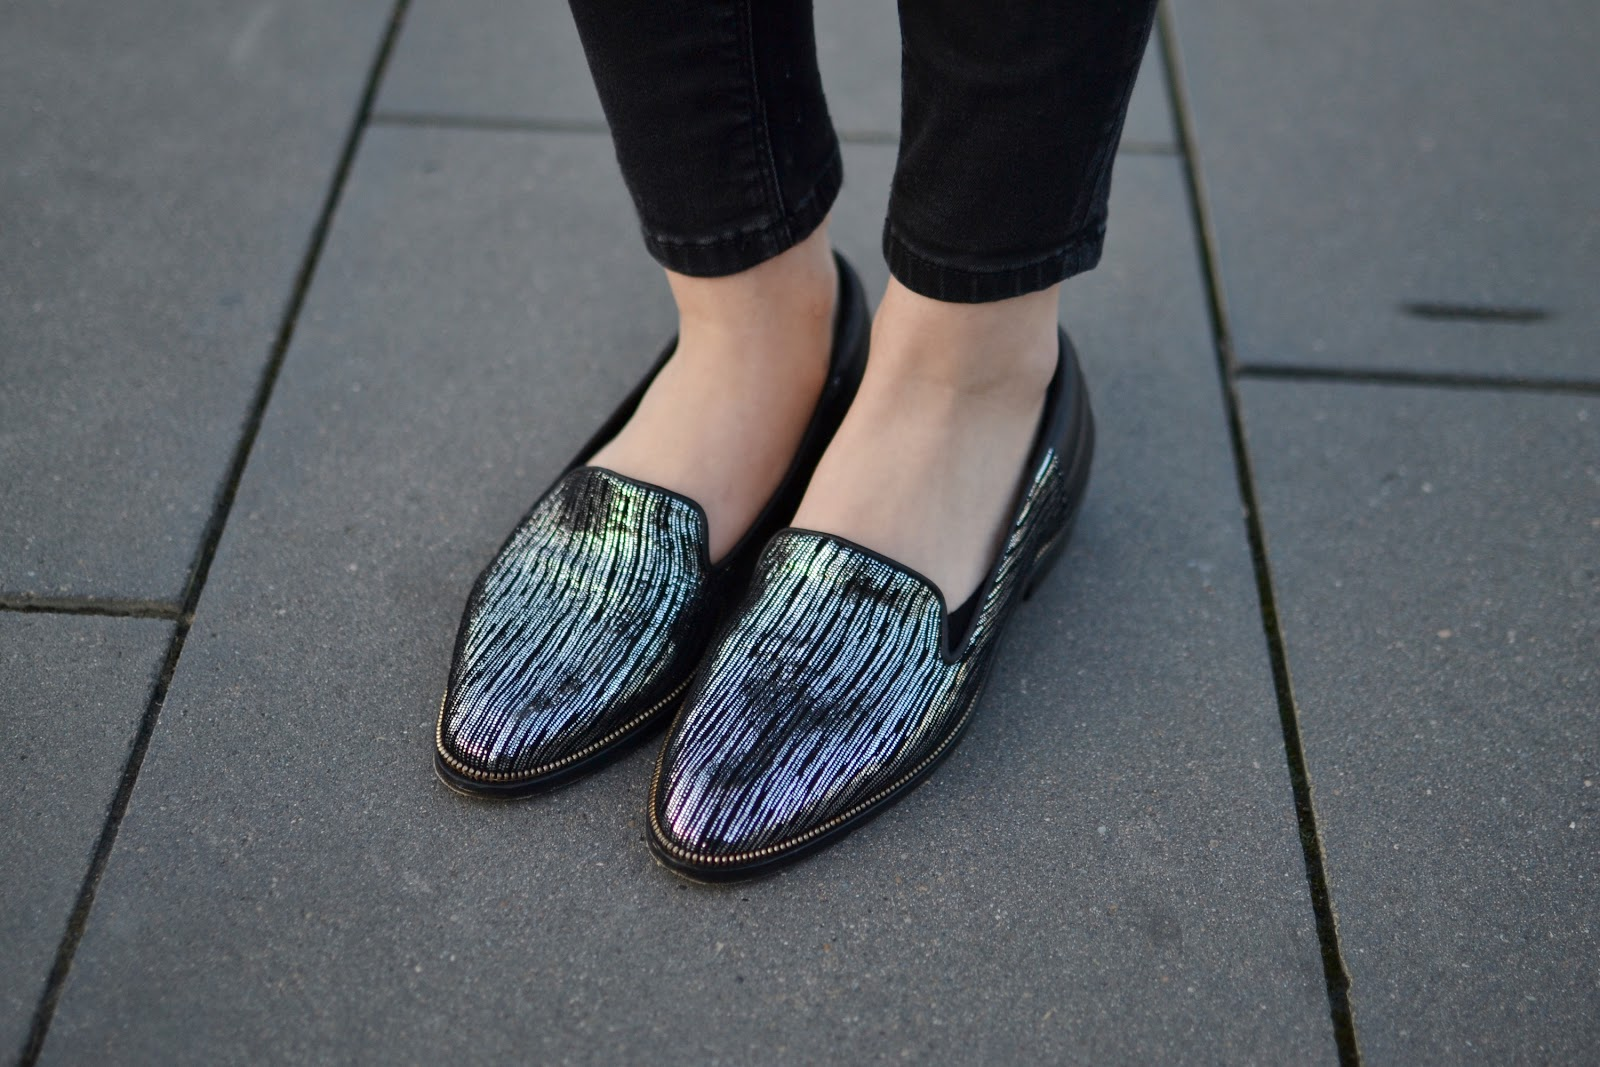 The kooples silver loafers outfit